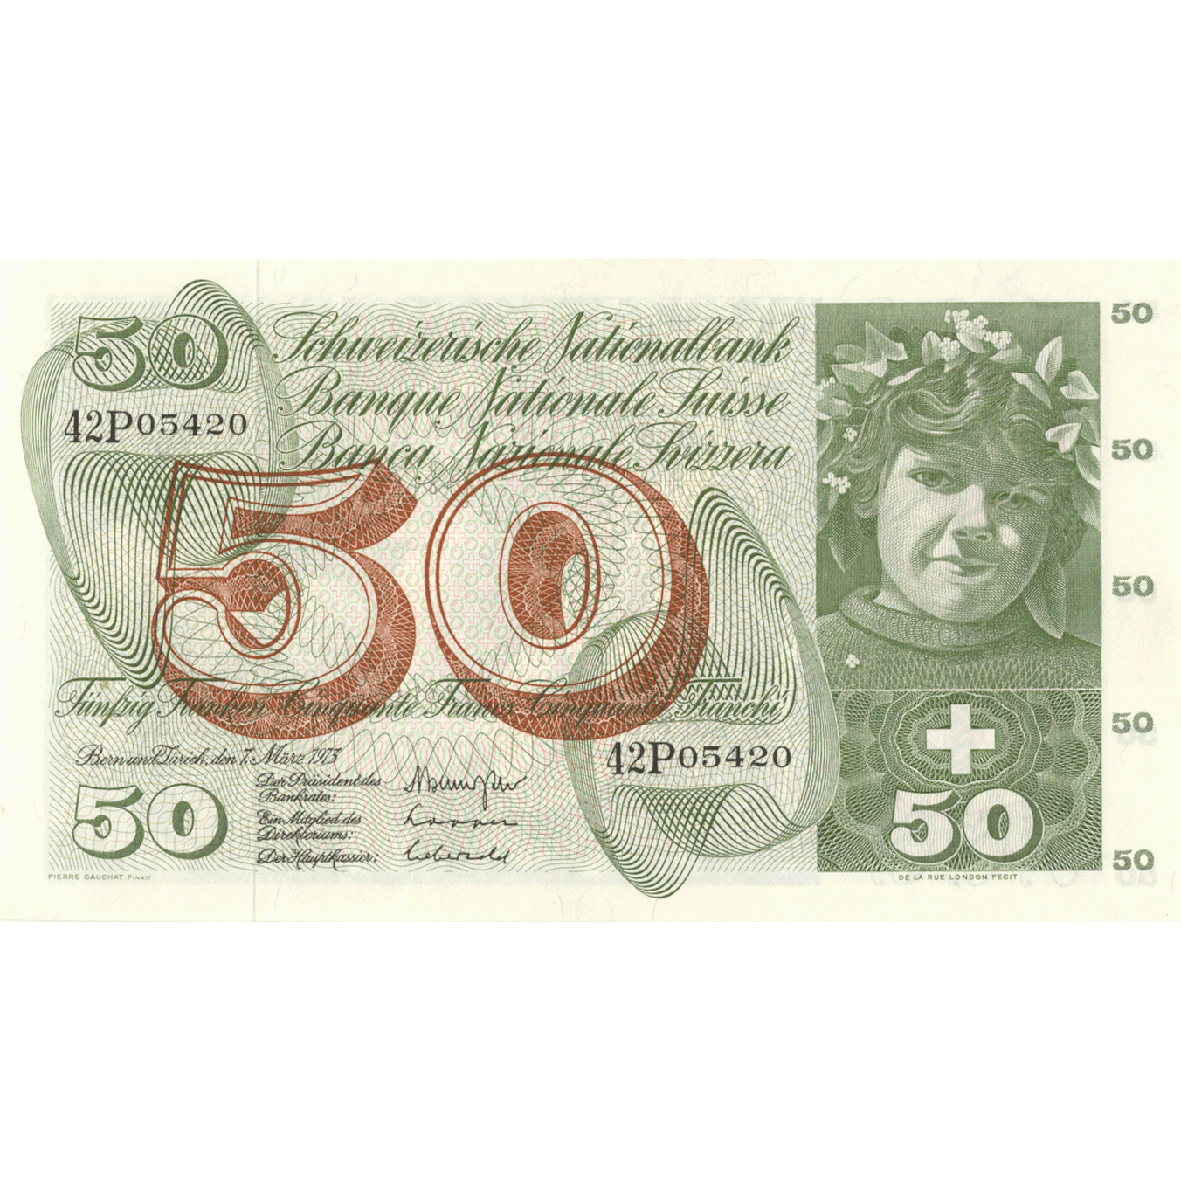 Swiss Confederation, 50 Francs (5th Banknote Series, in Circulation 1956-1980) (obverse)